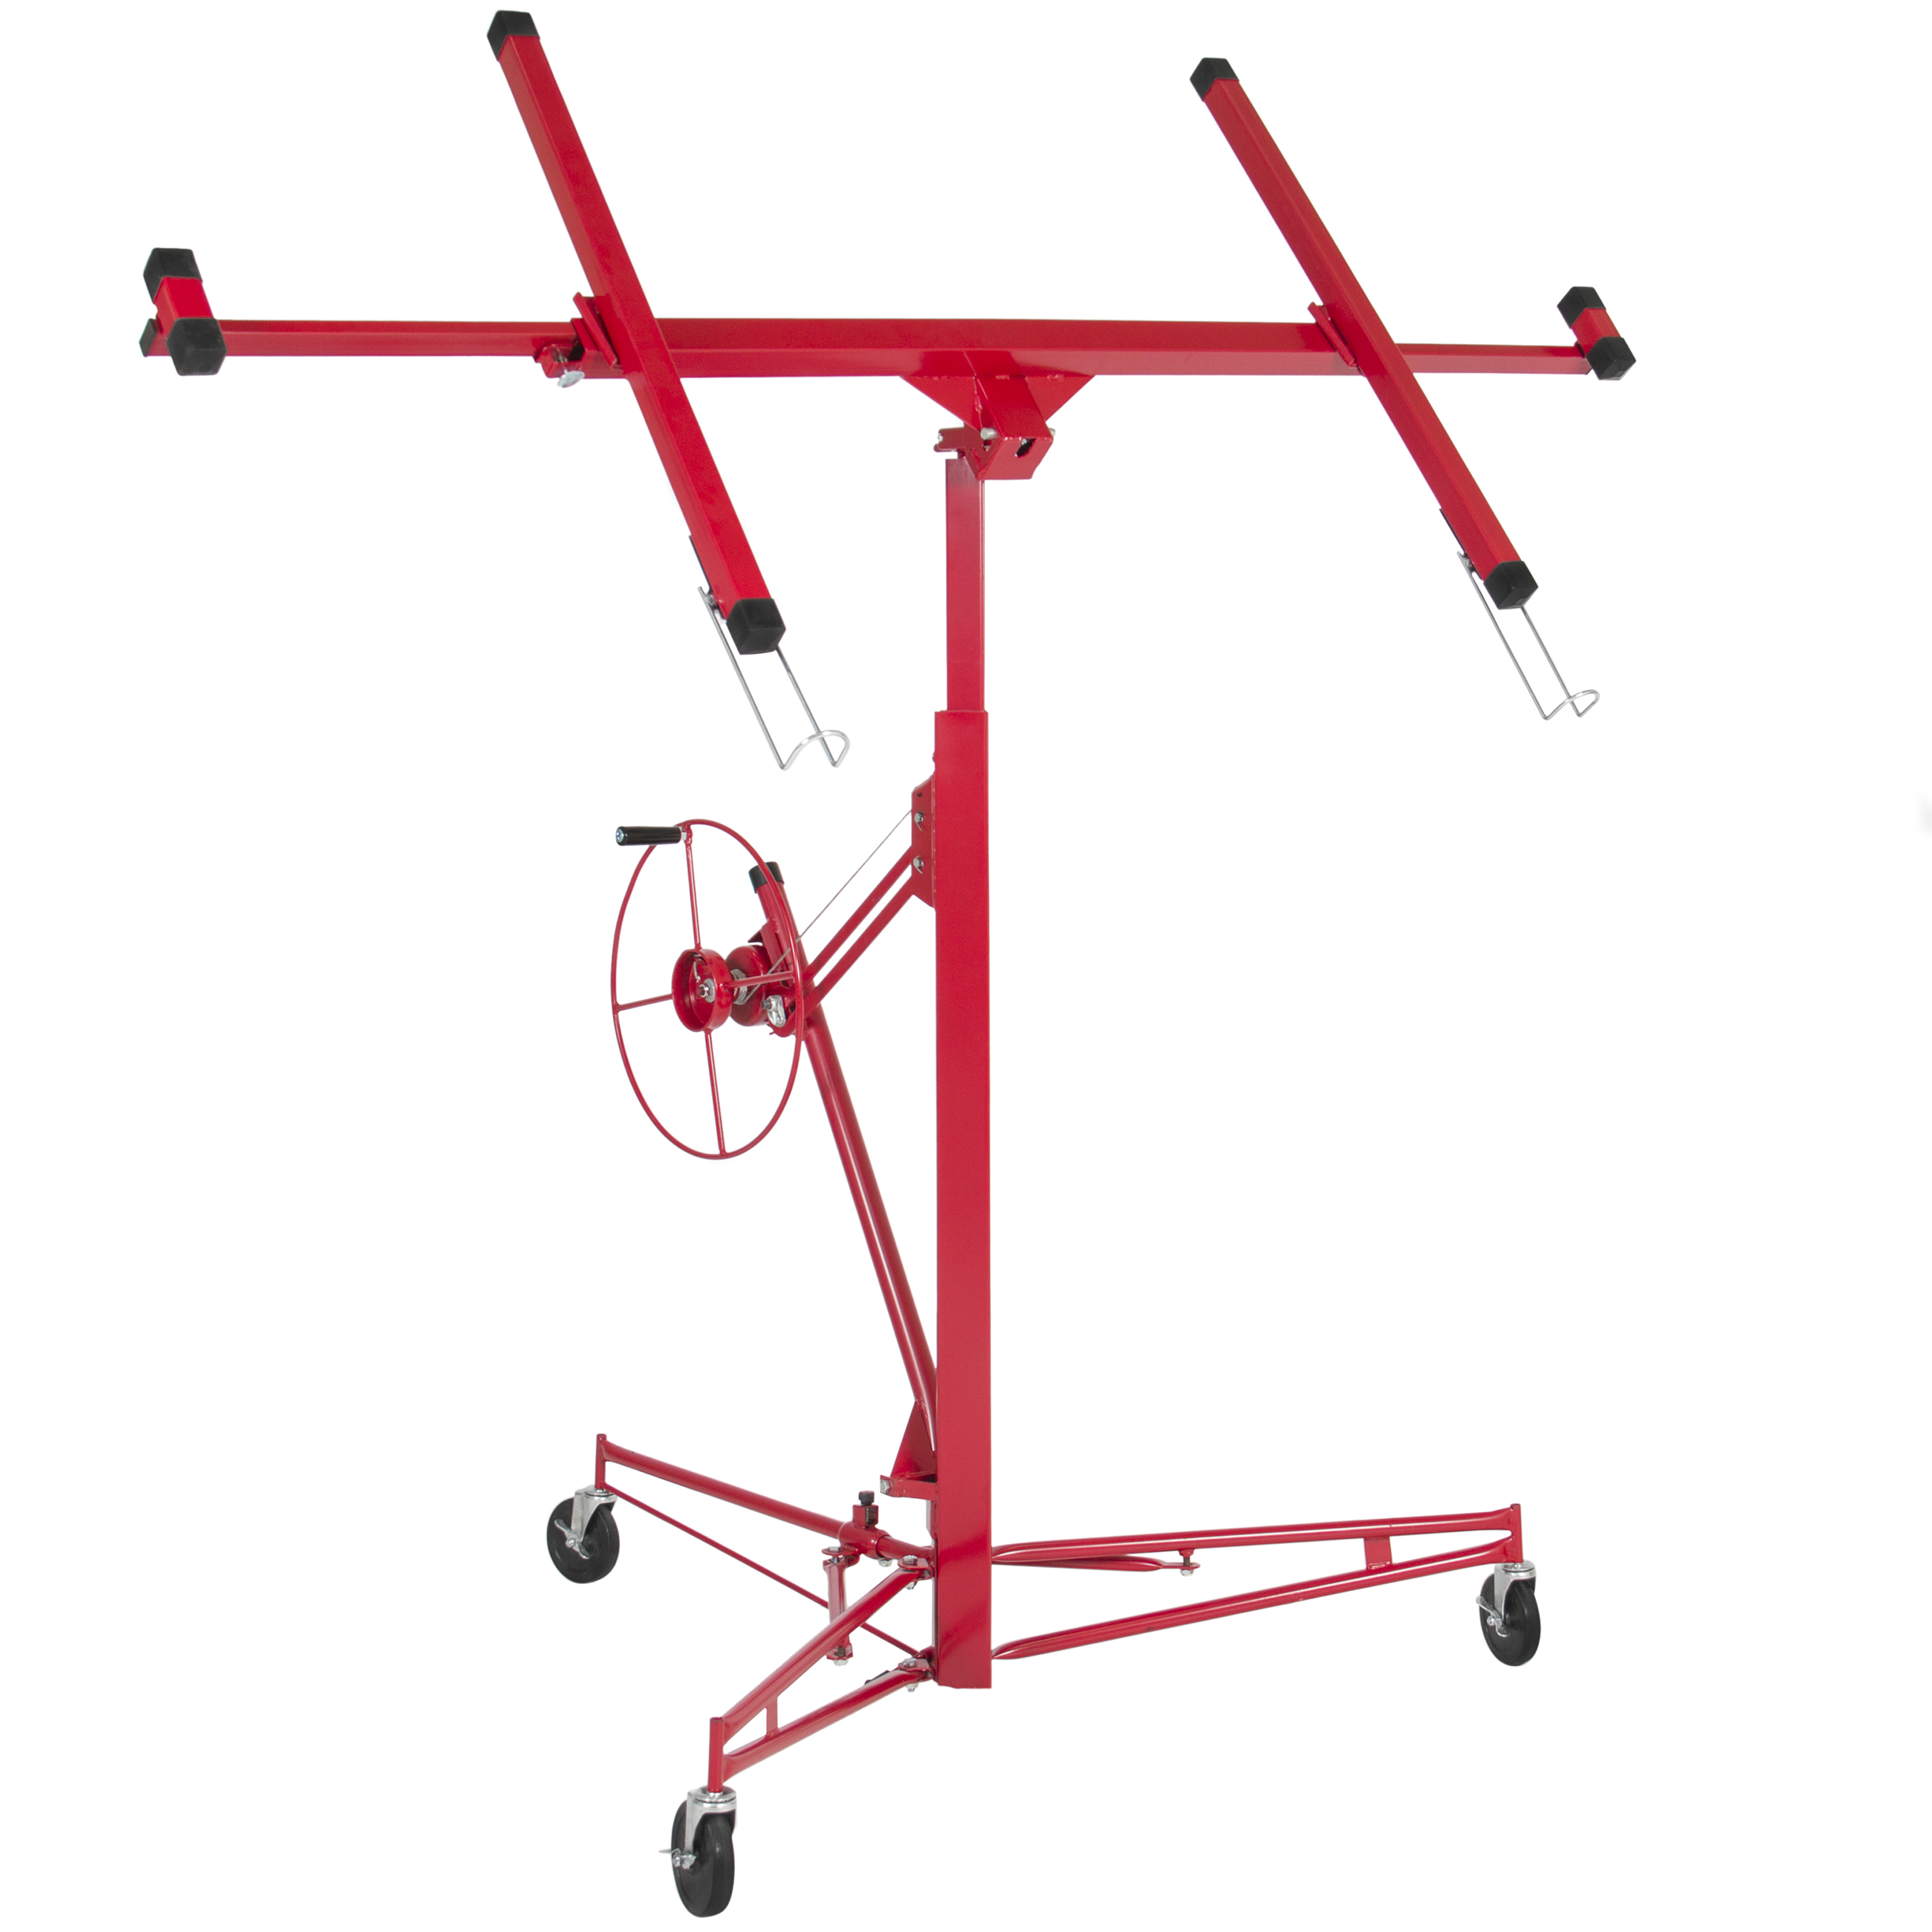 Best Choice Products 11ft Drywall Lift Panel HoistJack Lifter Construction Tool w  Caster Wheels -Red by Best Choice Products